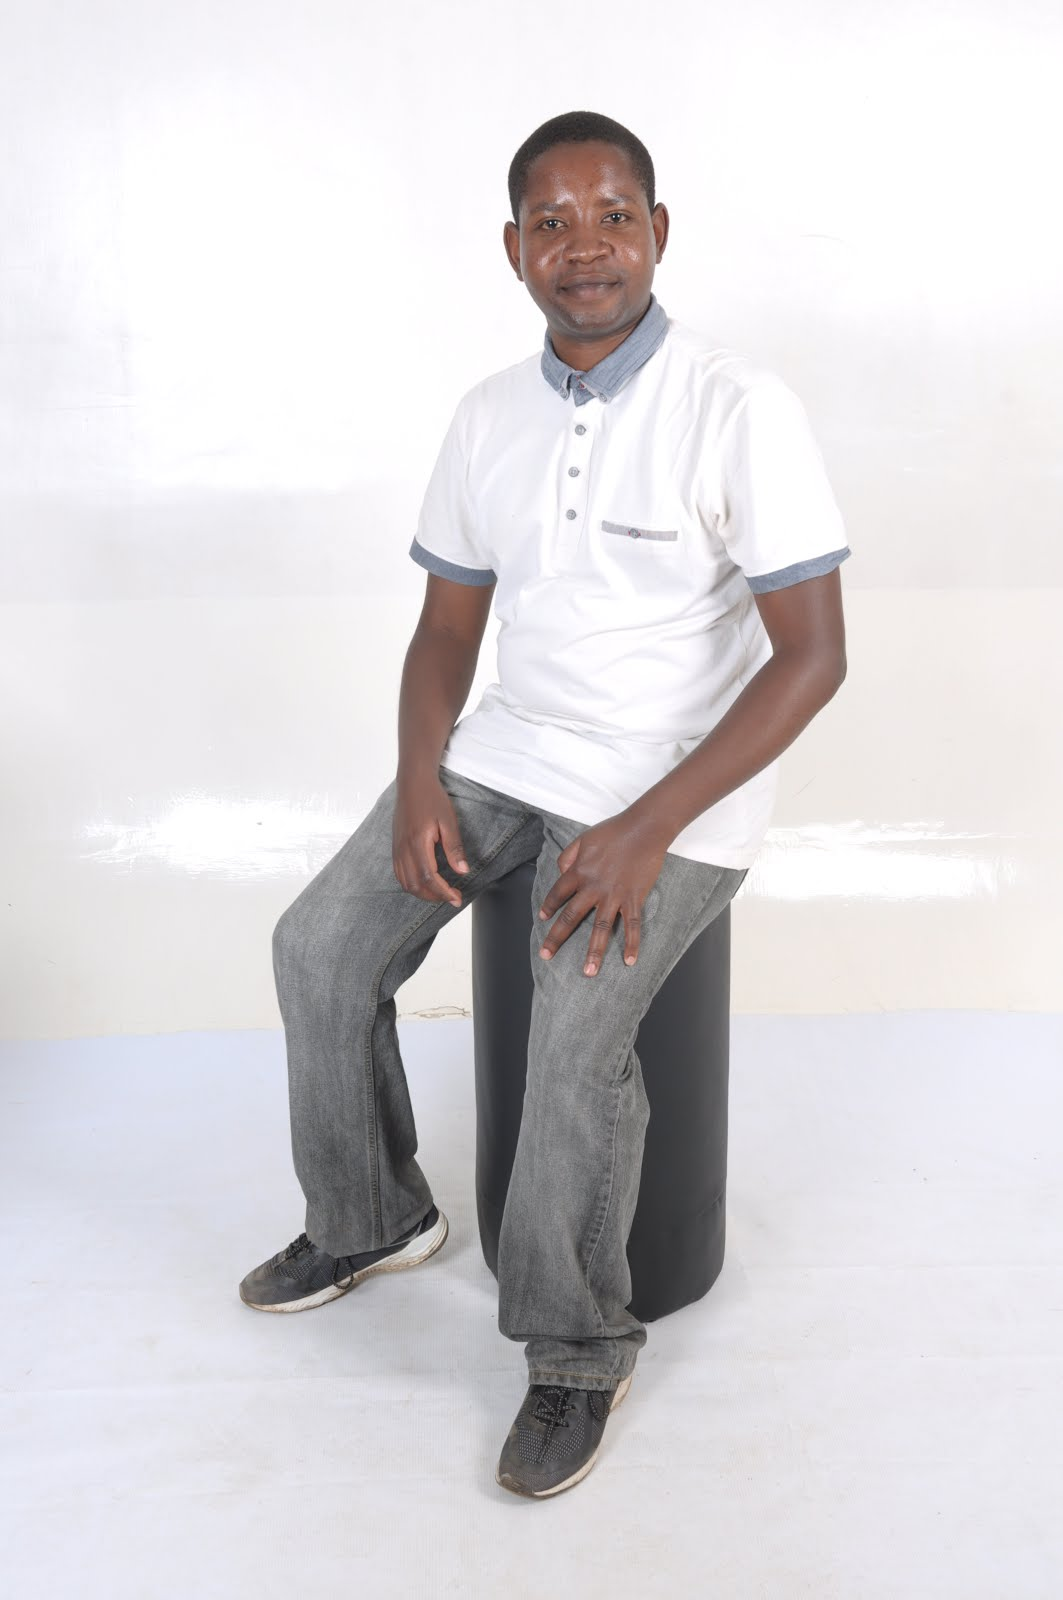 Albert Migowa (Counselling Psychologist, Emotional Intelligence Facilitator)